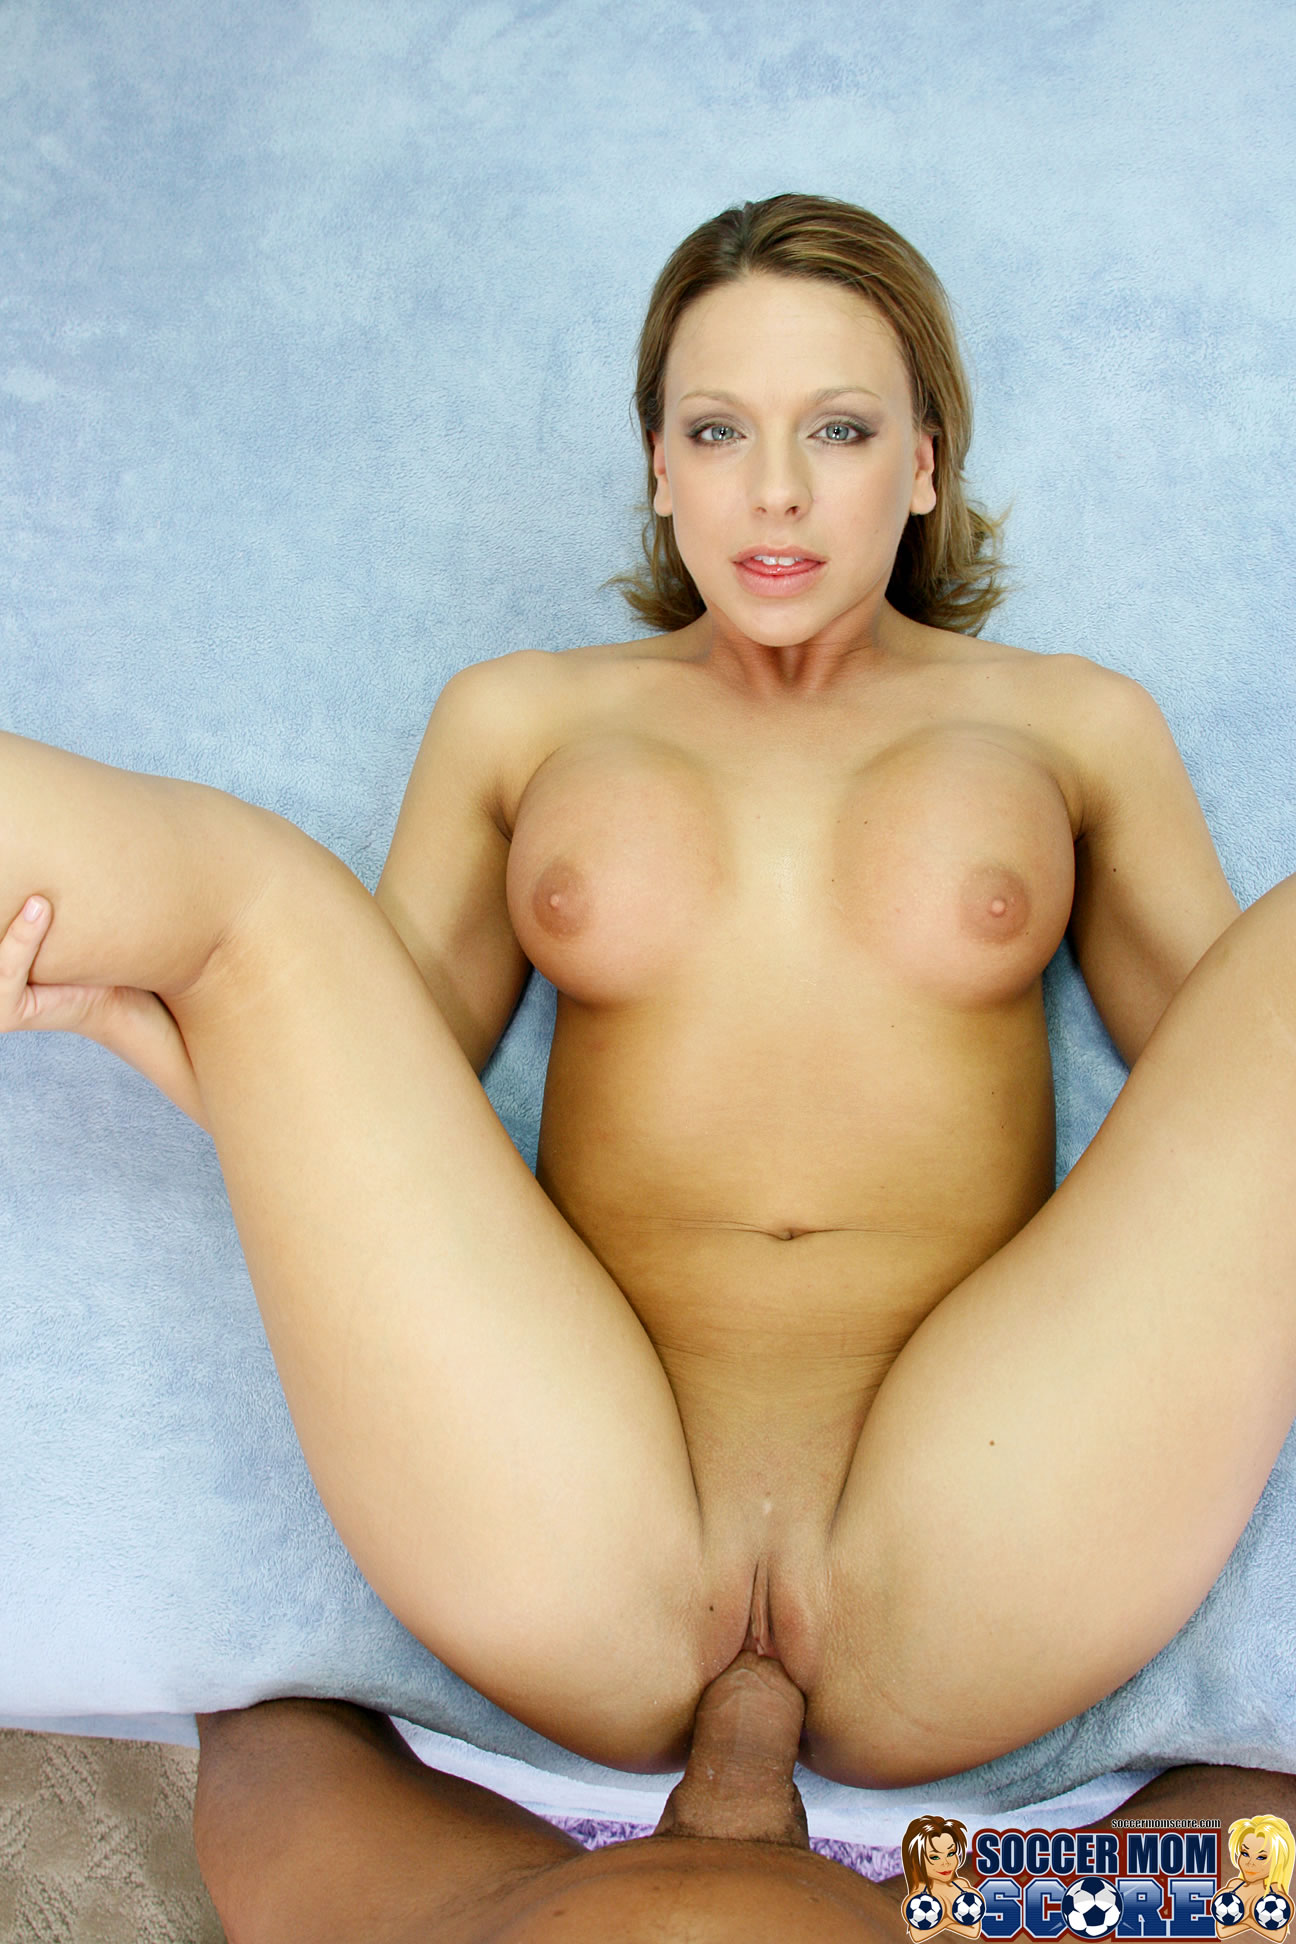 Think, that Hot mom gets nude sorry, that